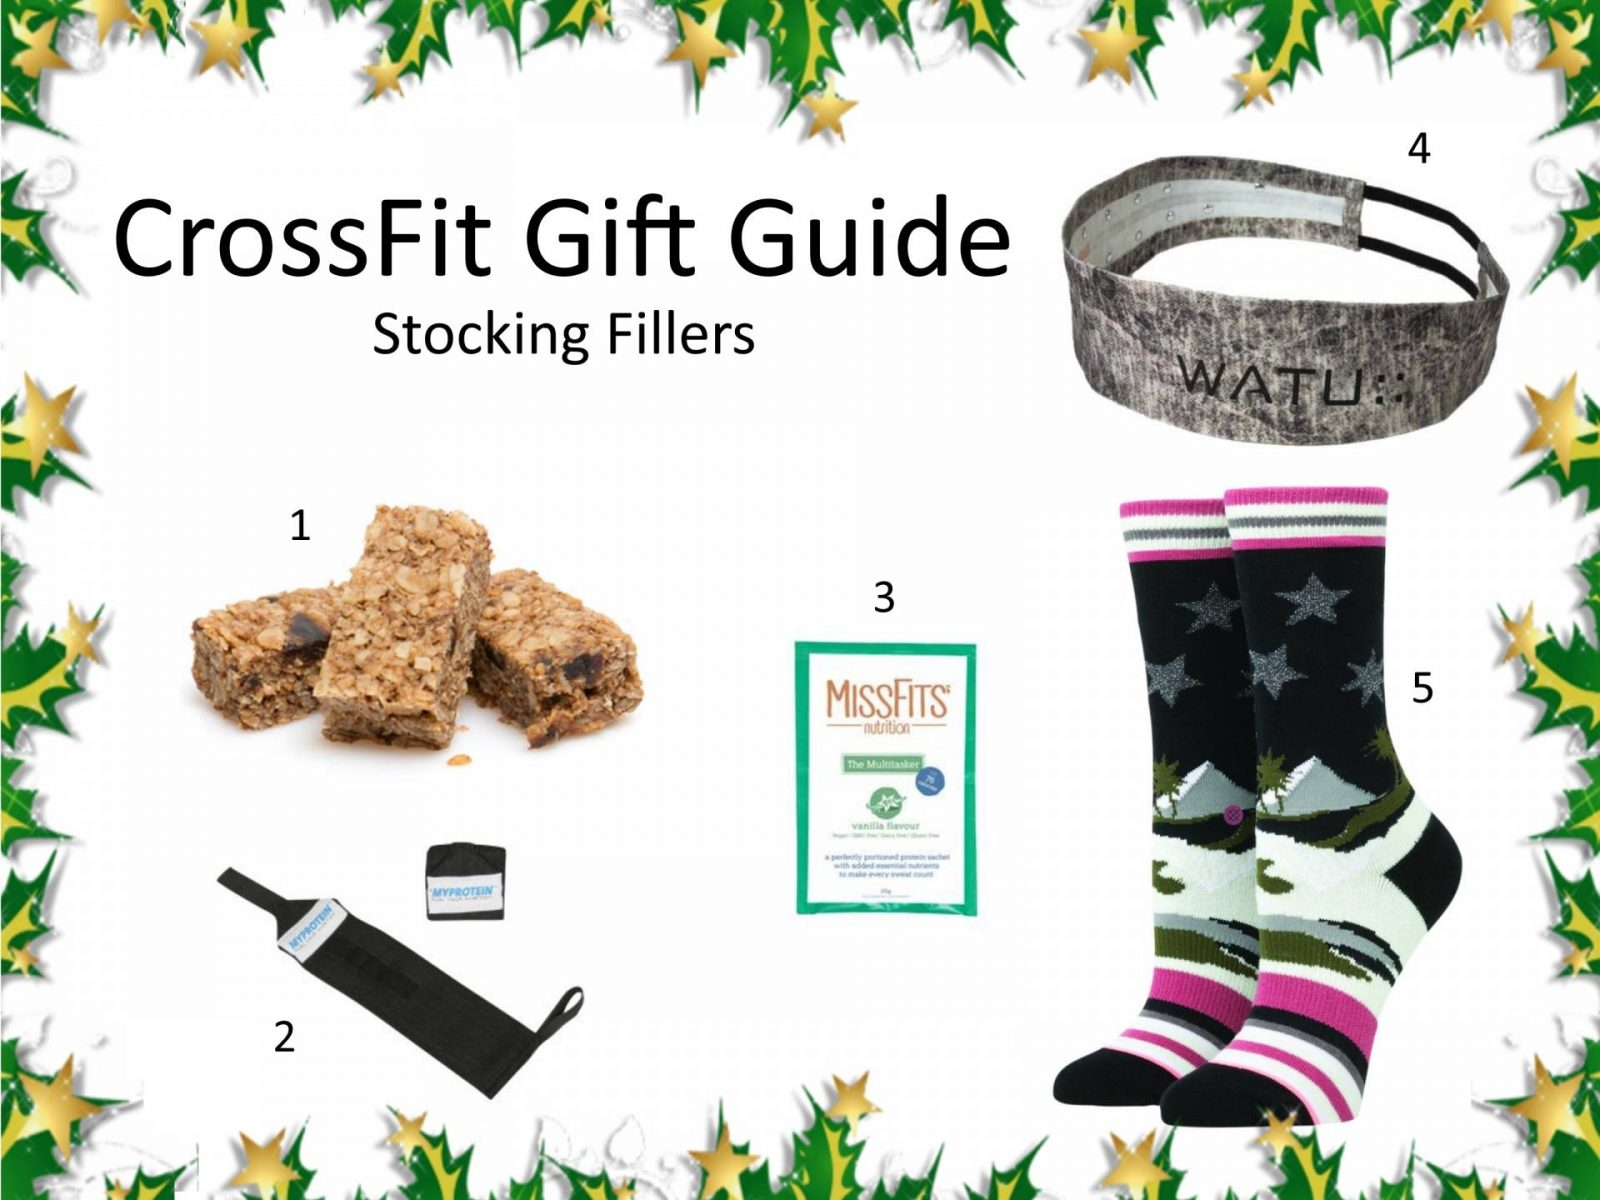 crossfit-gift-guide-stocking-fillers